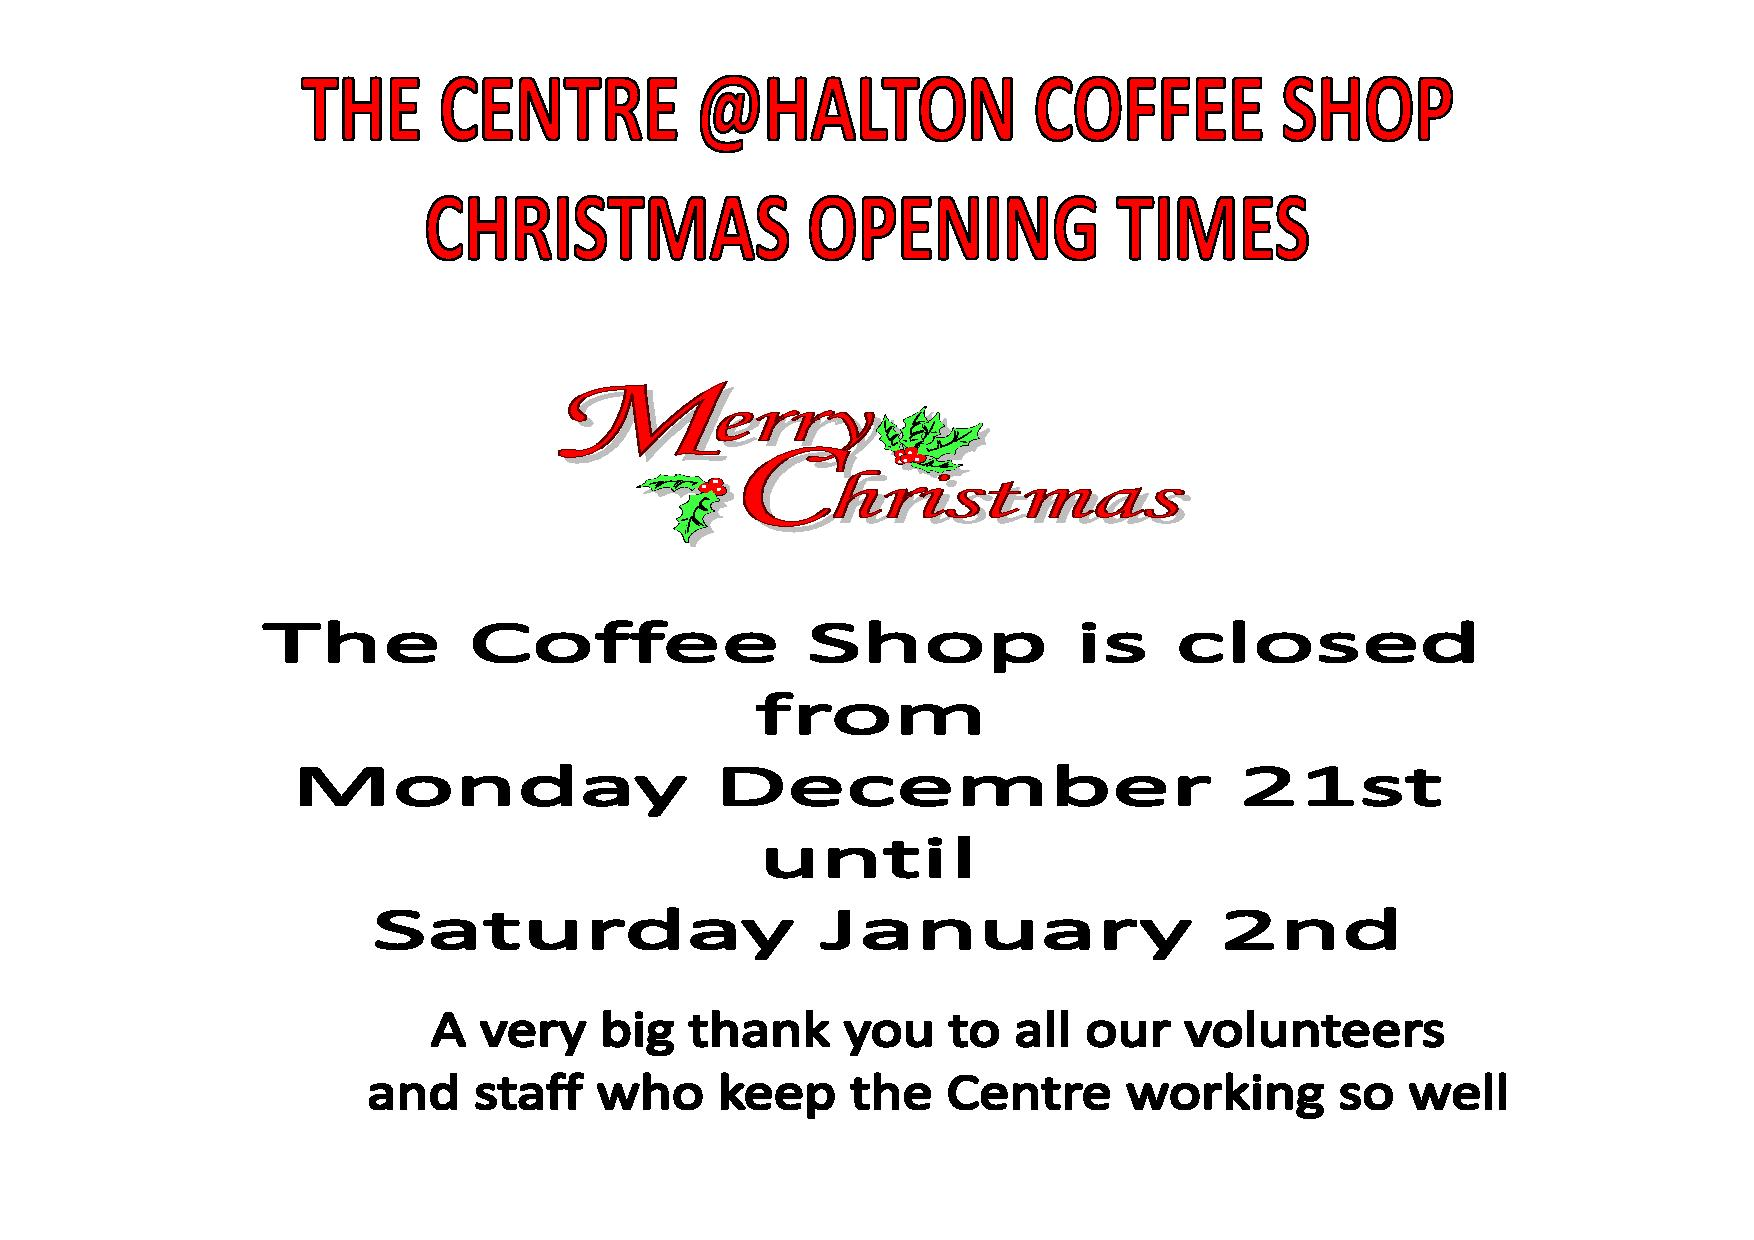 COFFEE SHOP OPEN TIMES FOR CHRISTMAS 2015-page-001 (2)